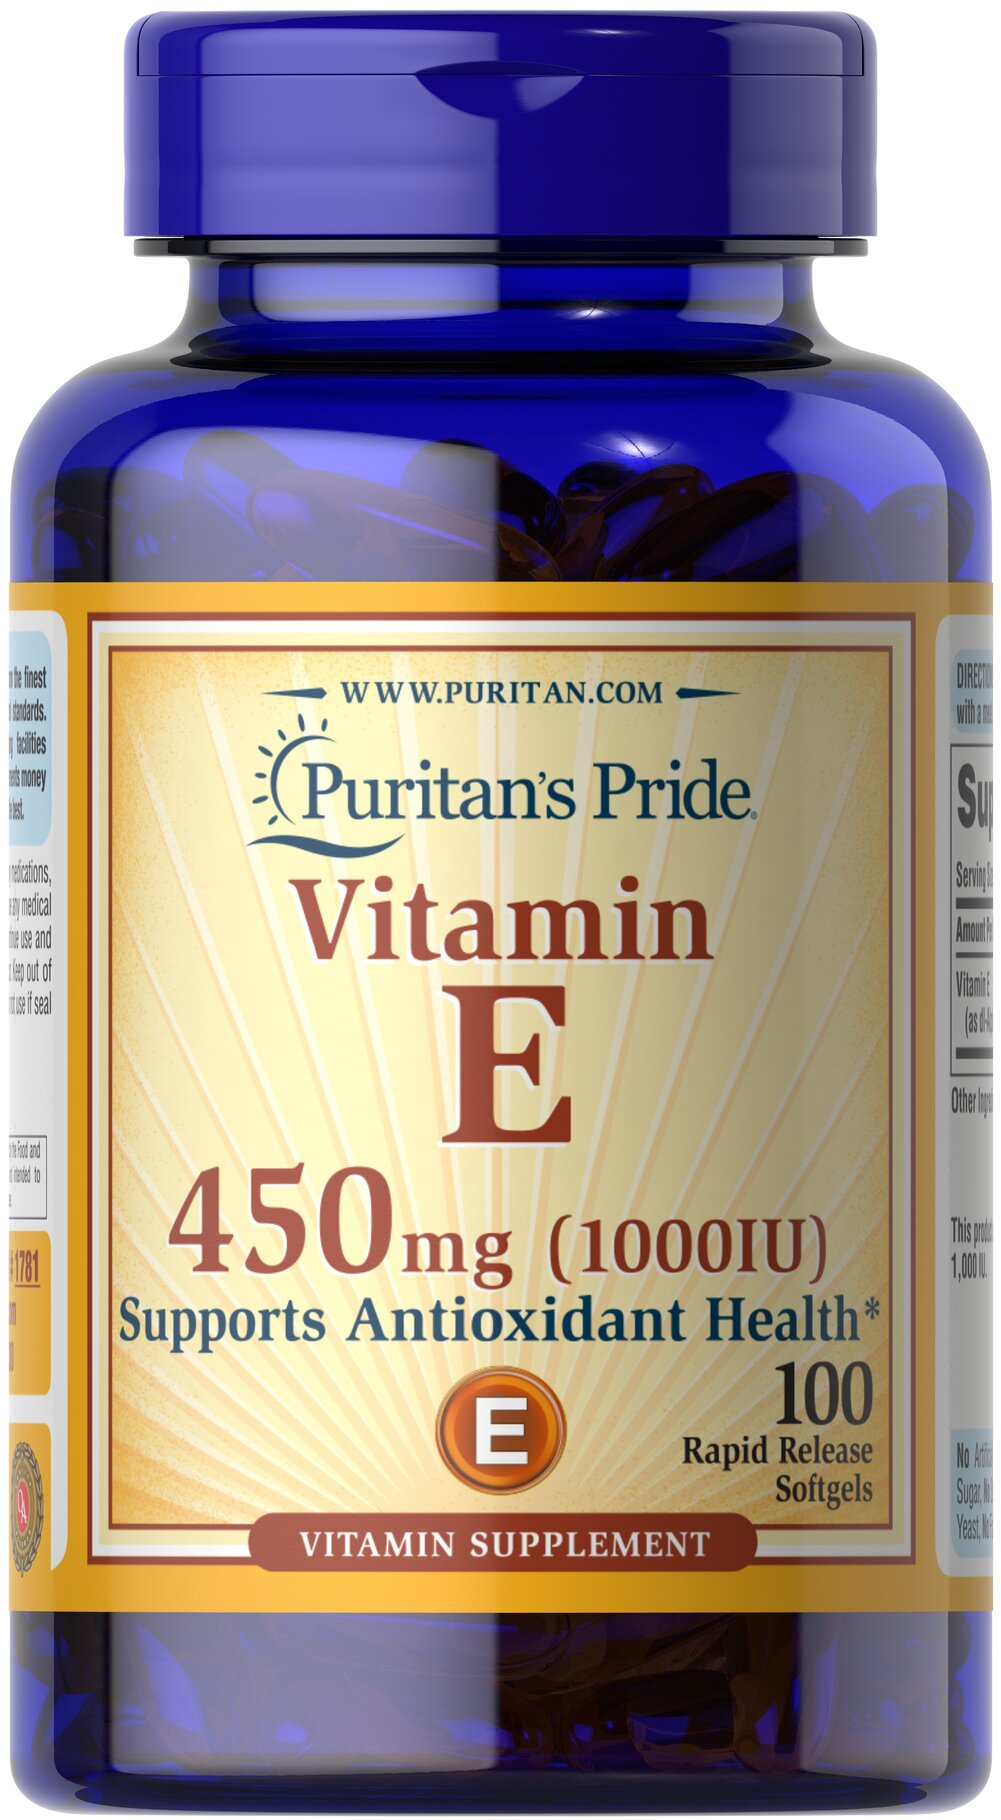 Vitamin E-1000 IU <p>Features dl-Alpha Vitamin E, a synthetic form of Vitamin E</p> <p>Promotes heart and circulatory health**</p> <p>Contributes to healthy skin and immune function**</p> <p>Rapid release liquid softgels are easy to swallow</p> <p>One a day formula</p> 100 Softgels 1000 IU $19.99